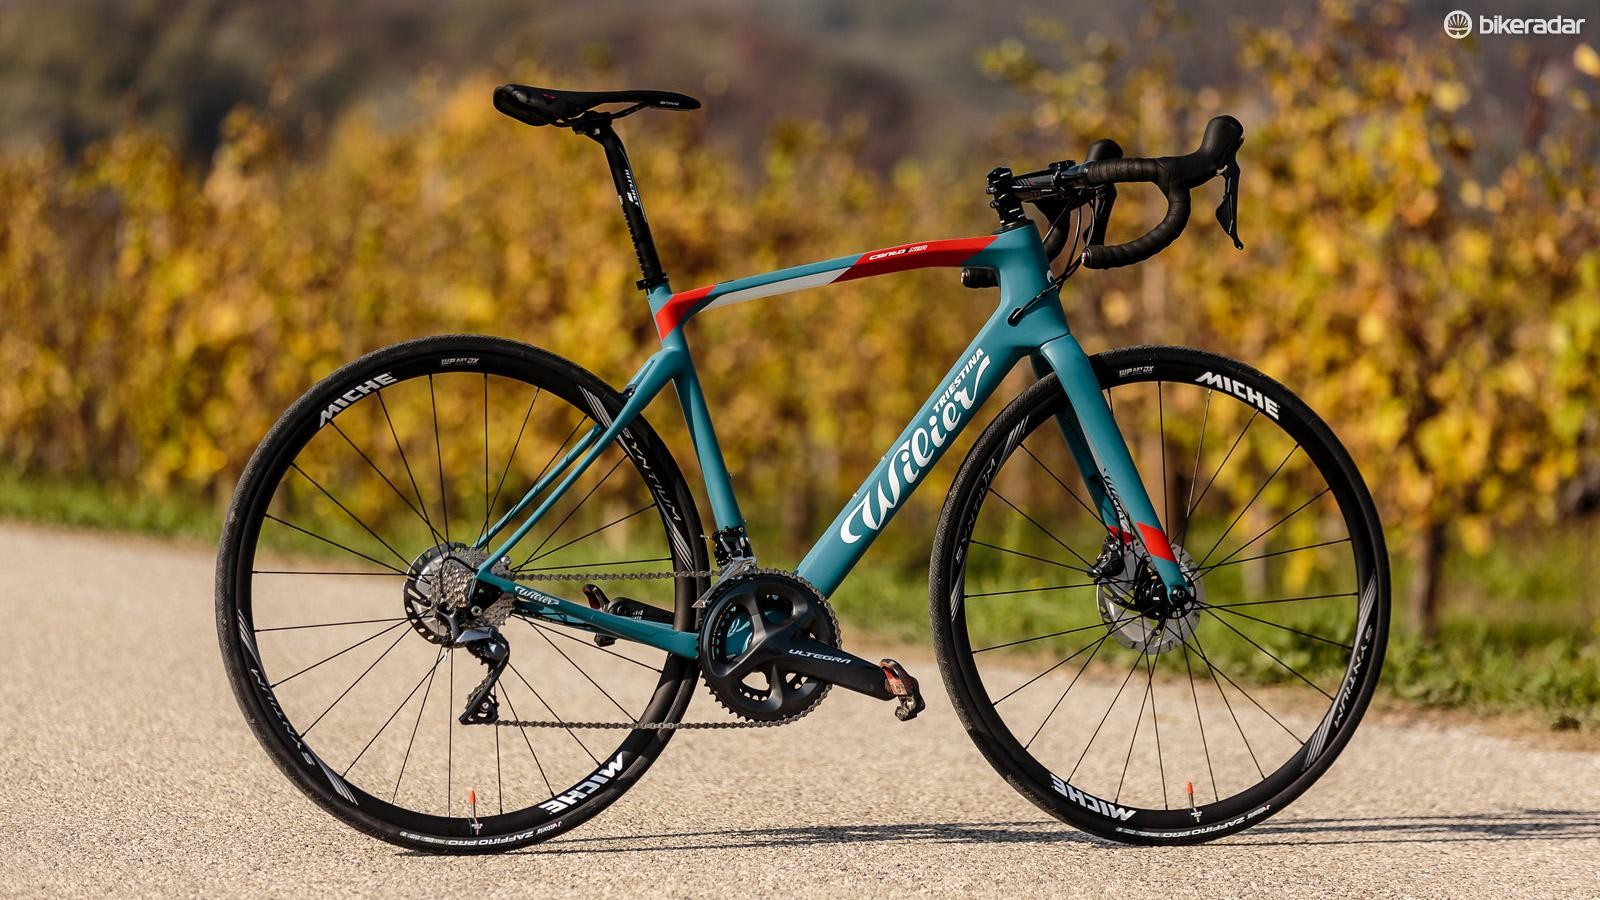 The top-of-the-line Ultegra Di2 bike will set you back €5,200